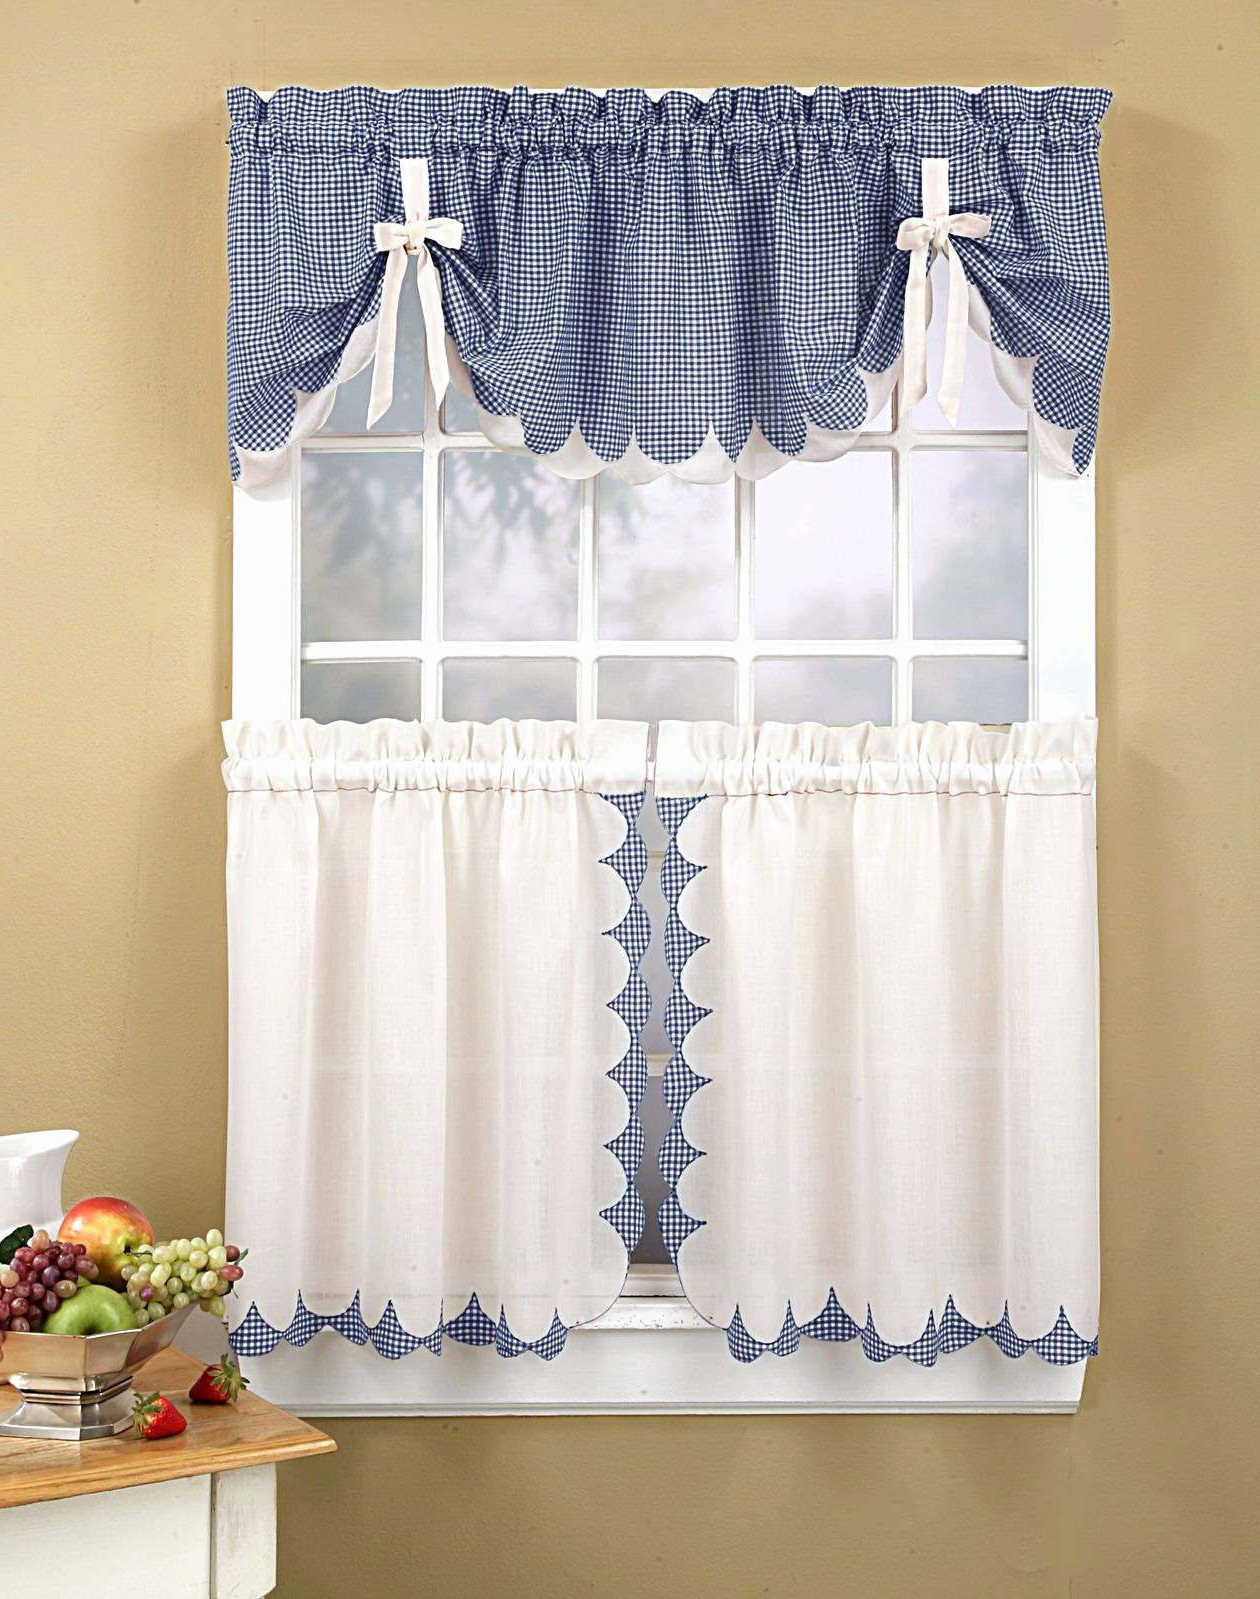 Well Known Astounding Country Living Kitchen Curtains High Style For Throughout Coastal Tier And Valance Window Curtain Sets (View 19 of 20)